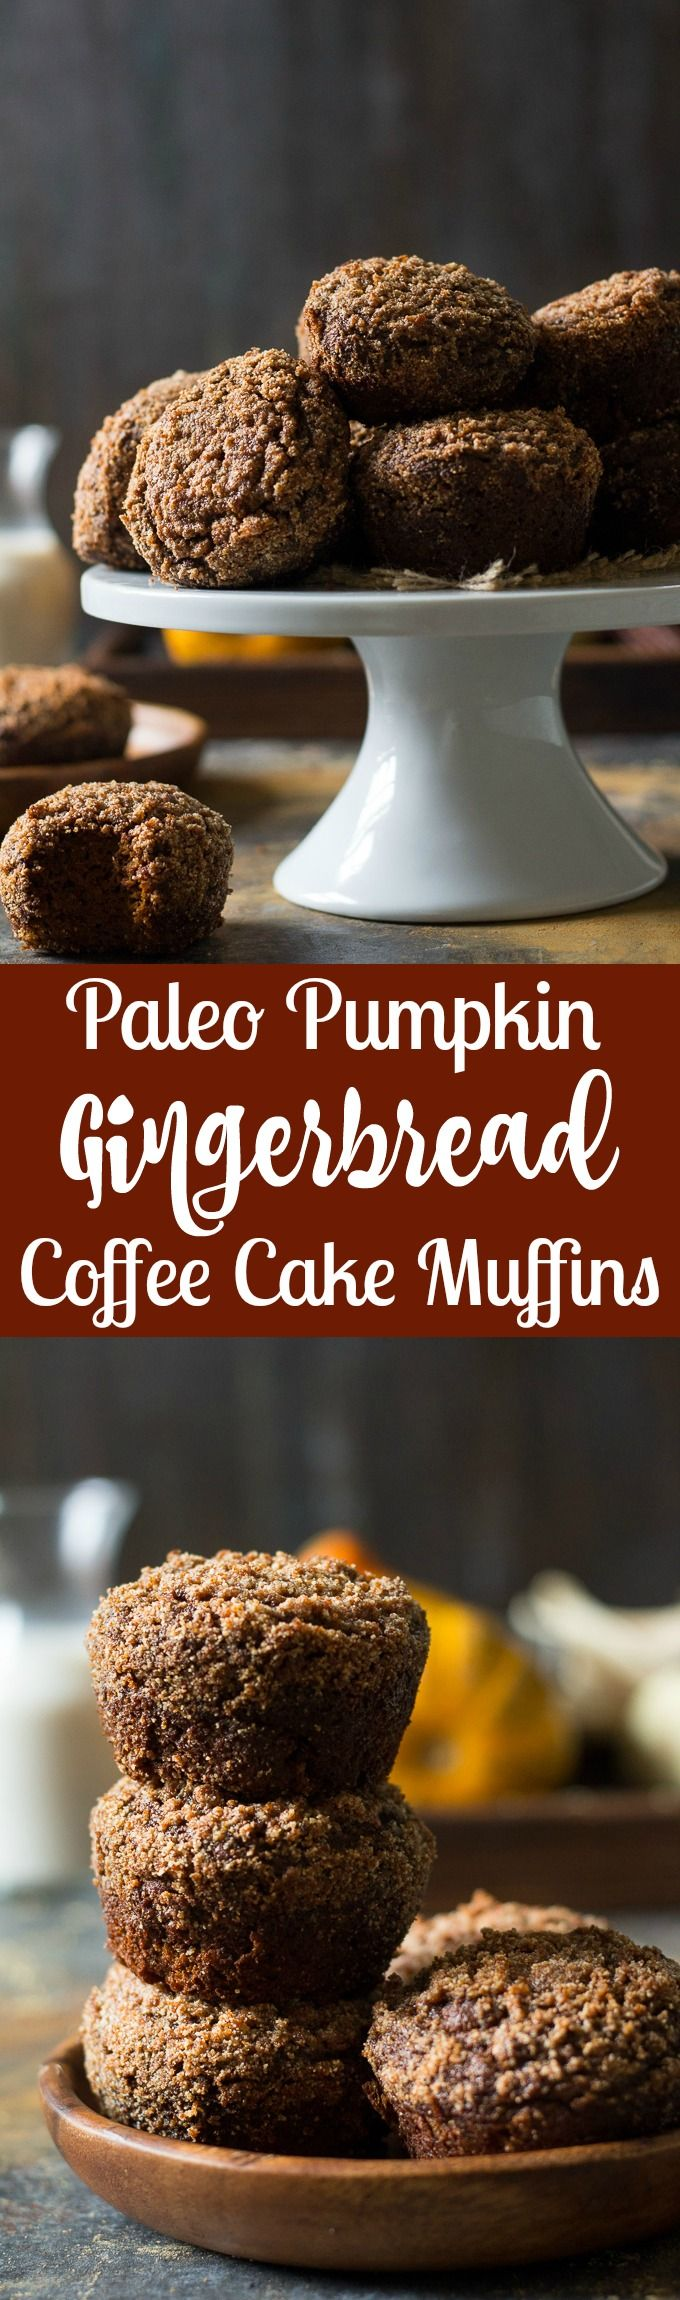 Pumpkin Gingerbread Paleo Coffee Cake Muffins - great for the holiday season or anytime for a healthy snack or dessert